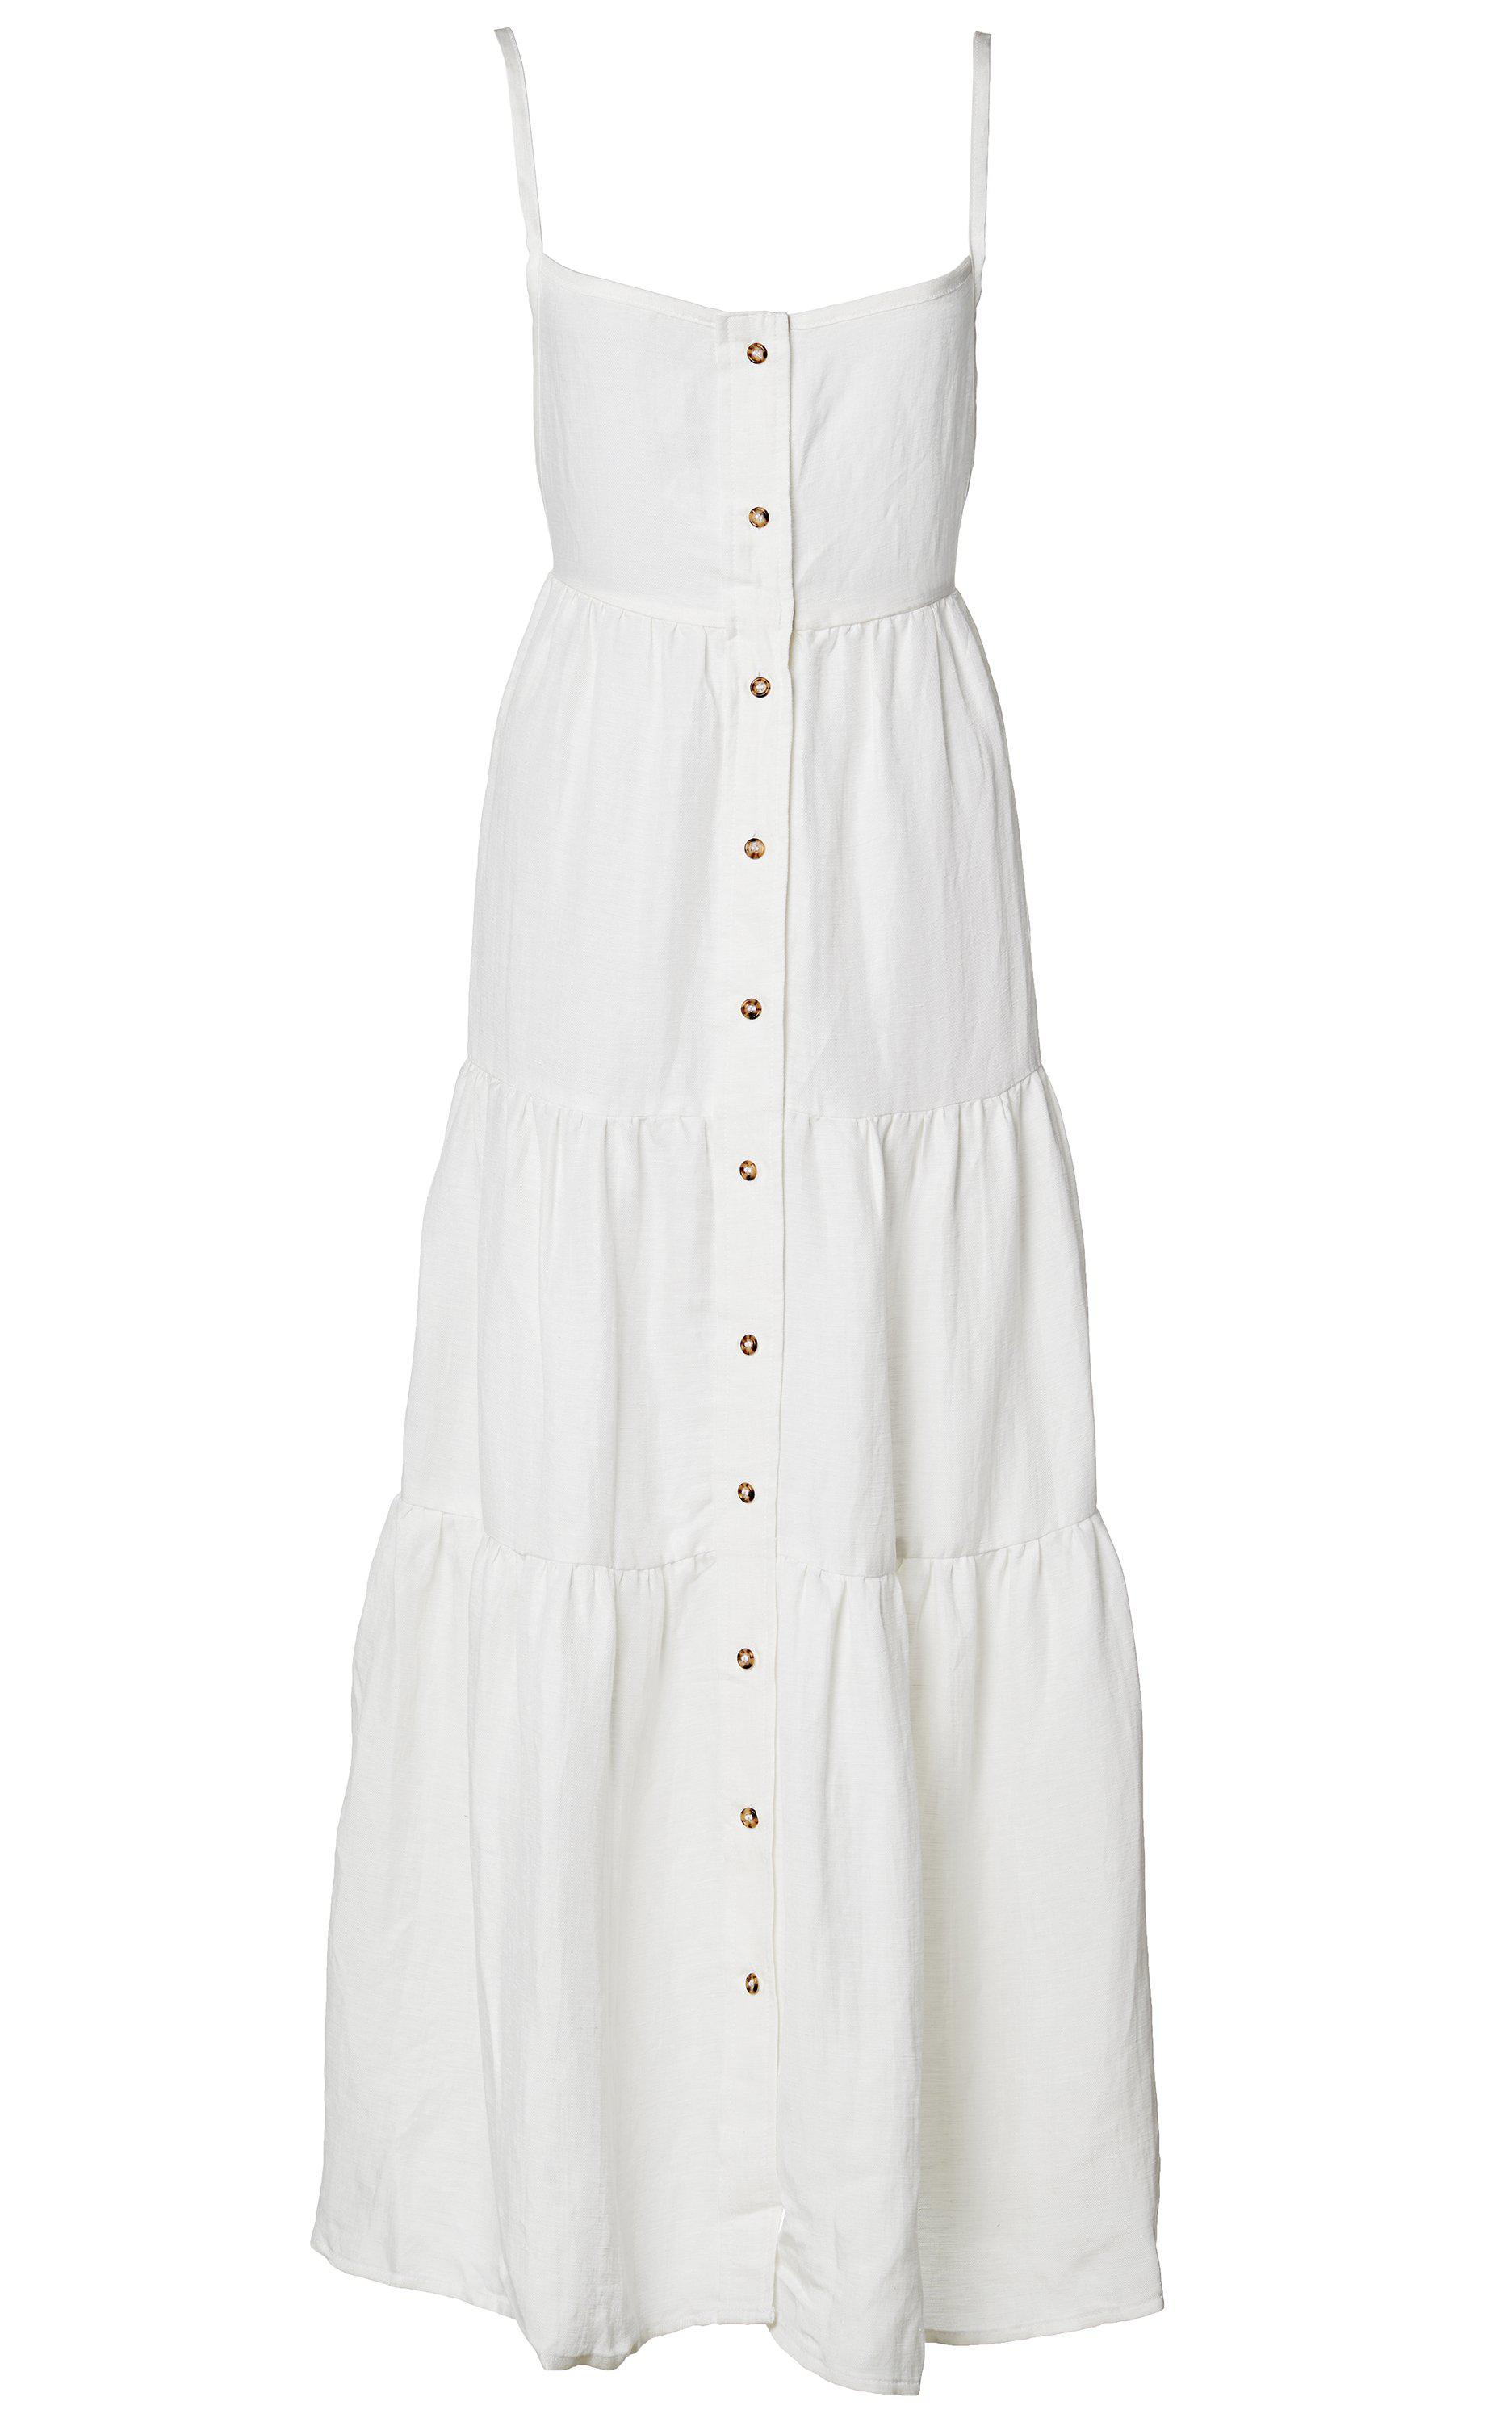 The Flounce Tiered Button-Down Midi Dress in Linen Cupro